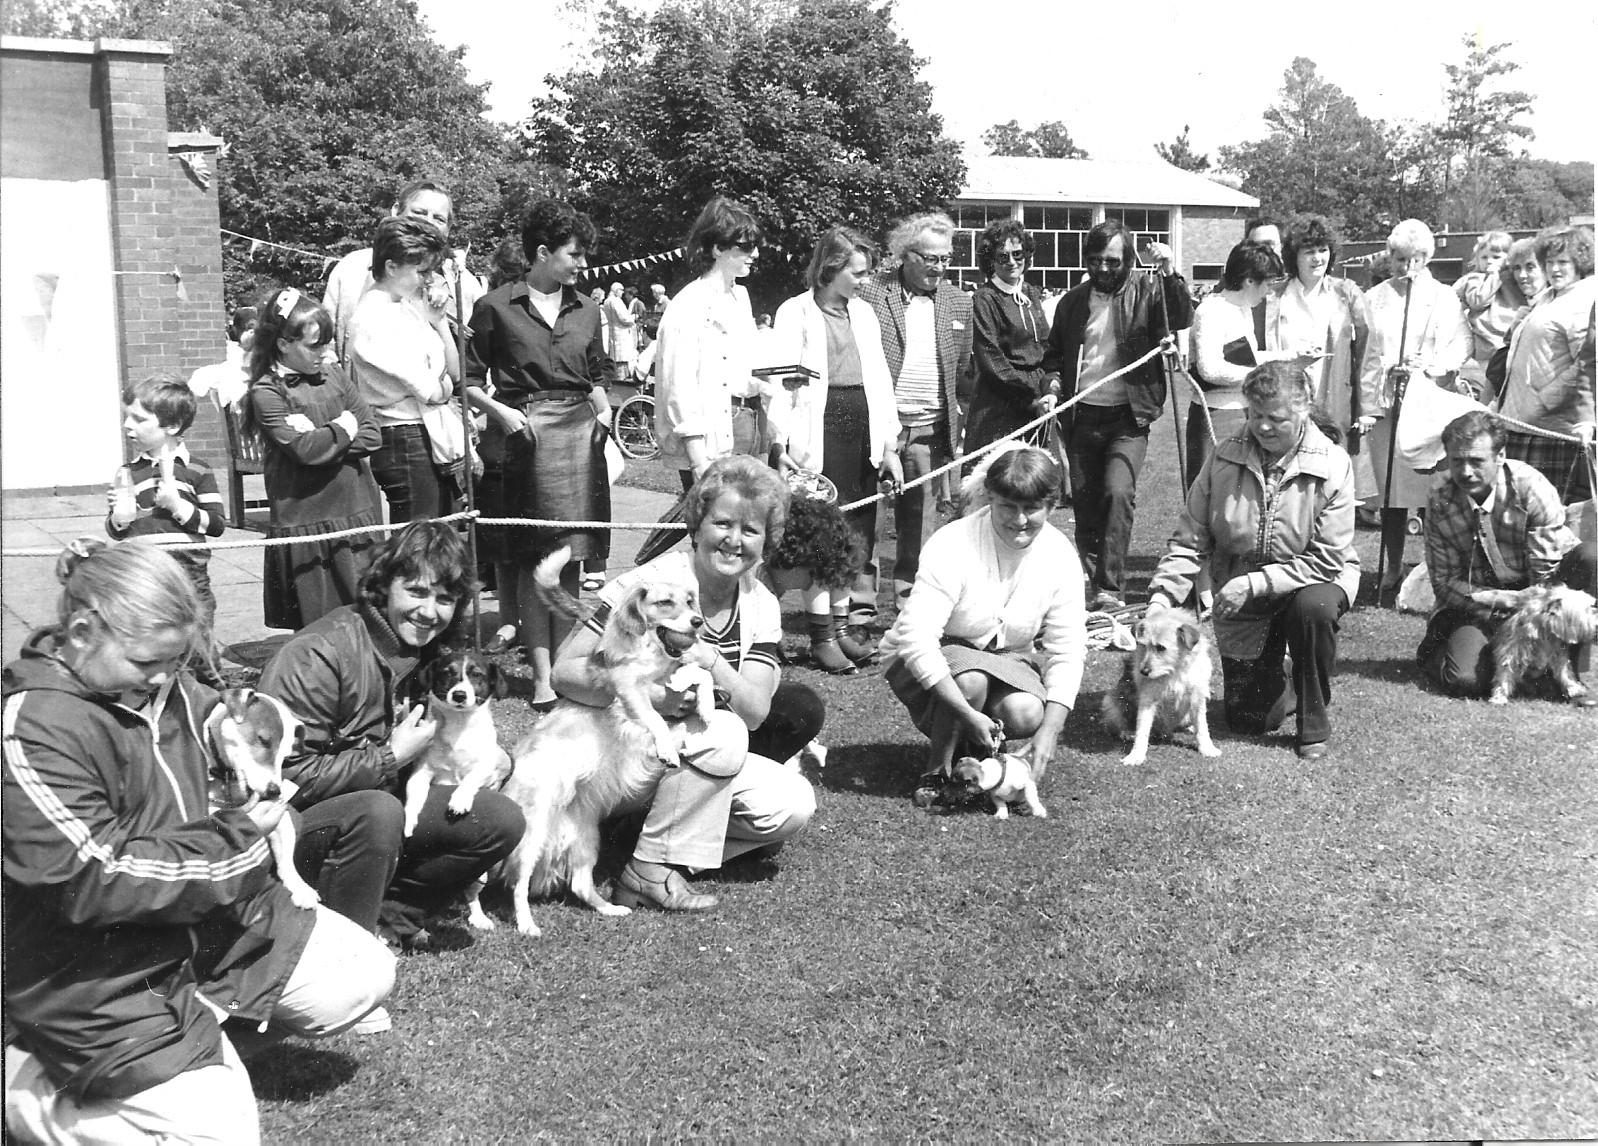 Visitors and their pets enjoy the Greaves Hall Fair in Banks, near Southport, on 3 June 1984